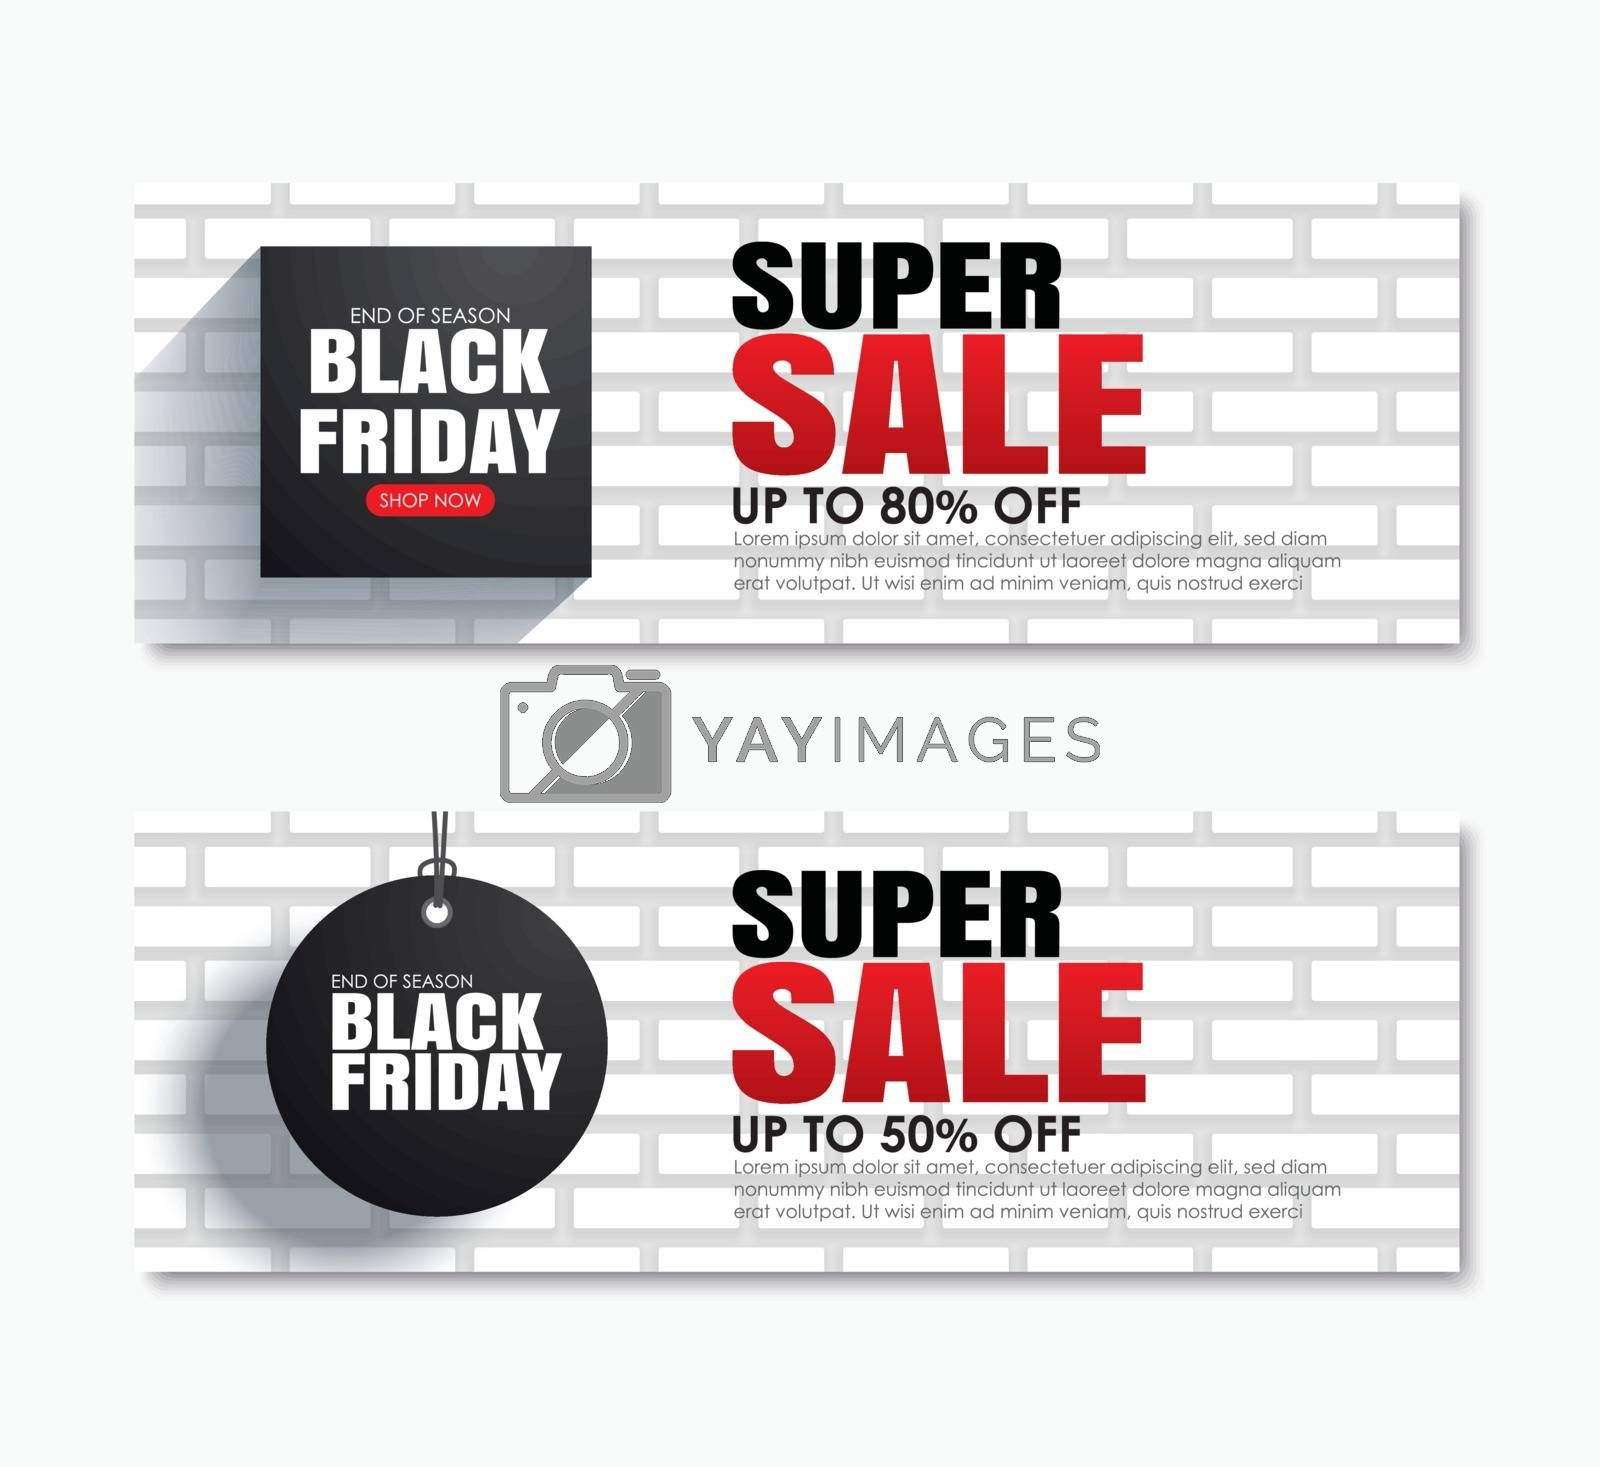 Black friday super sale shopping tag cover and web banner design template. Use for poster, flyer, discount, shopping, promotion, advertising.